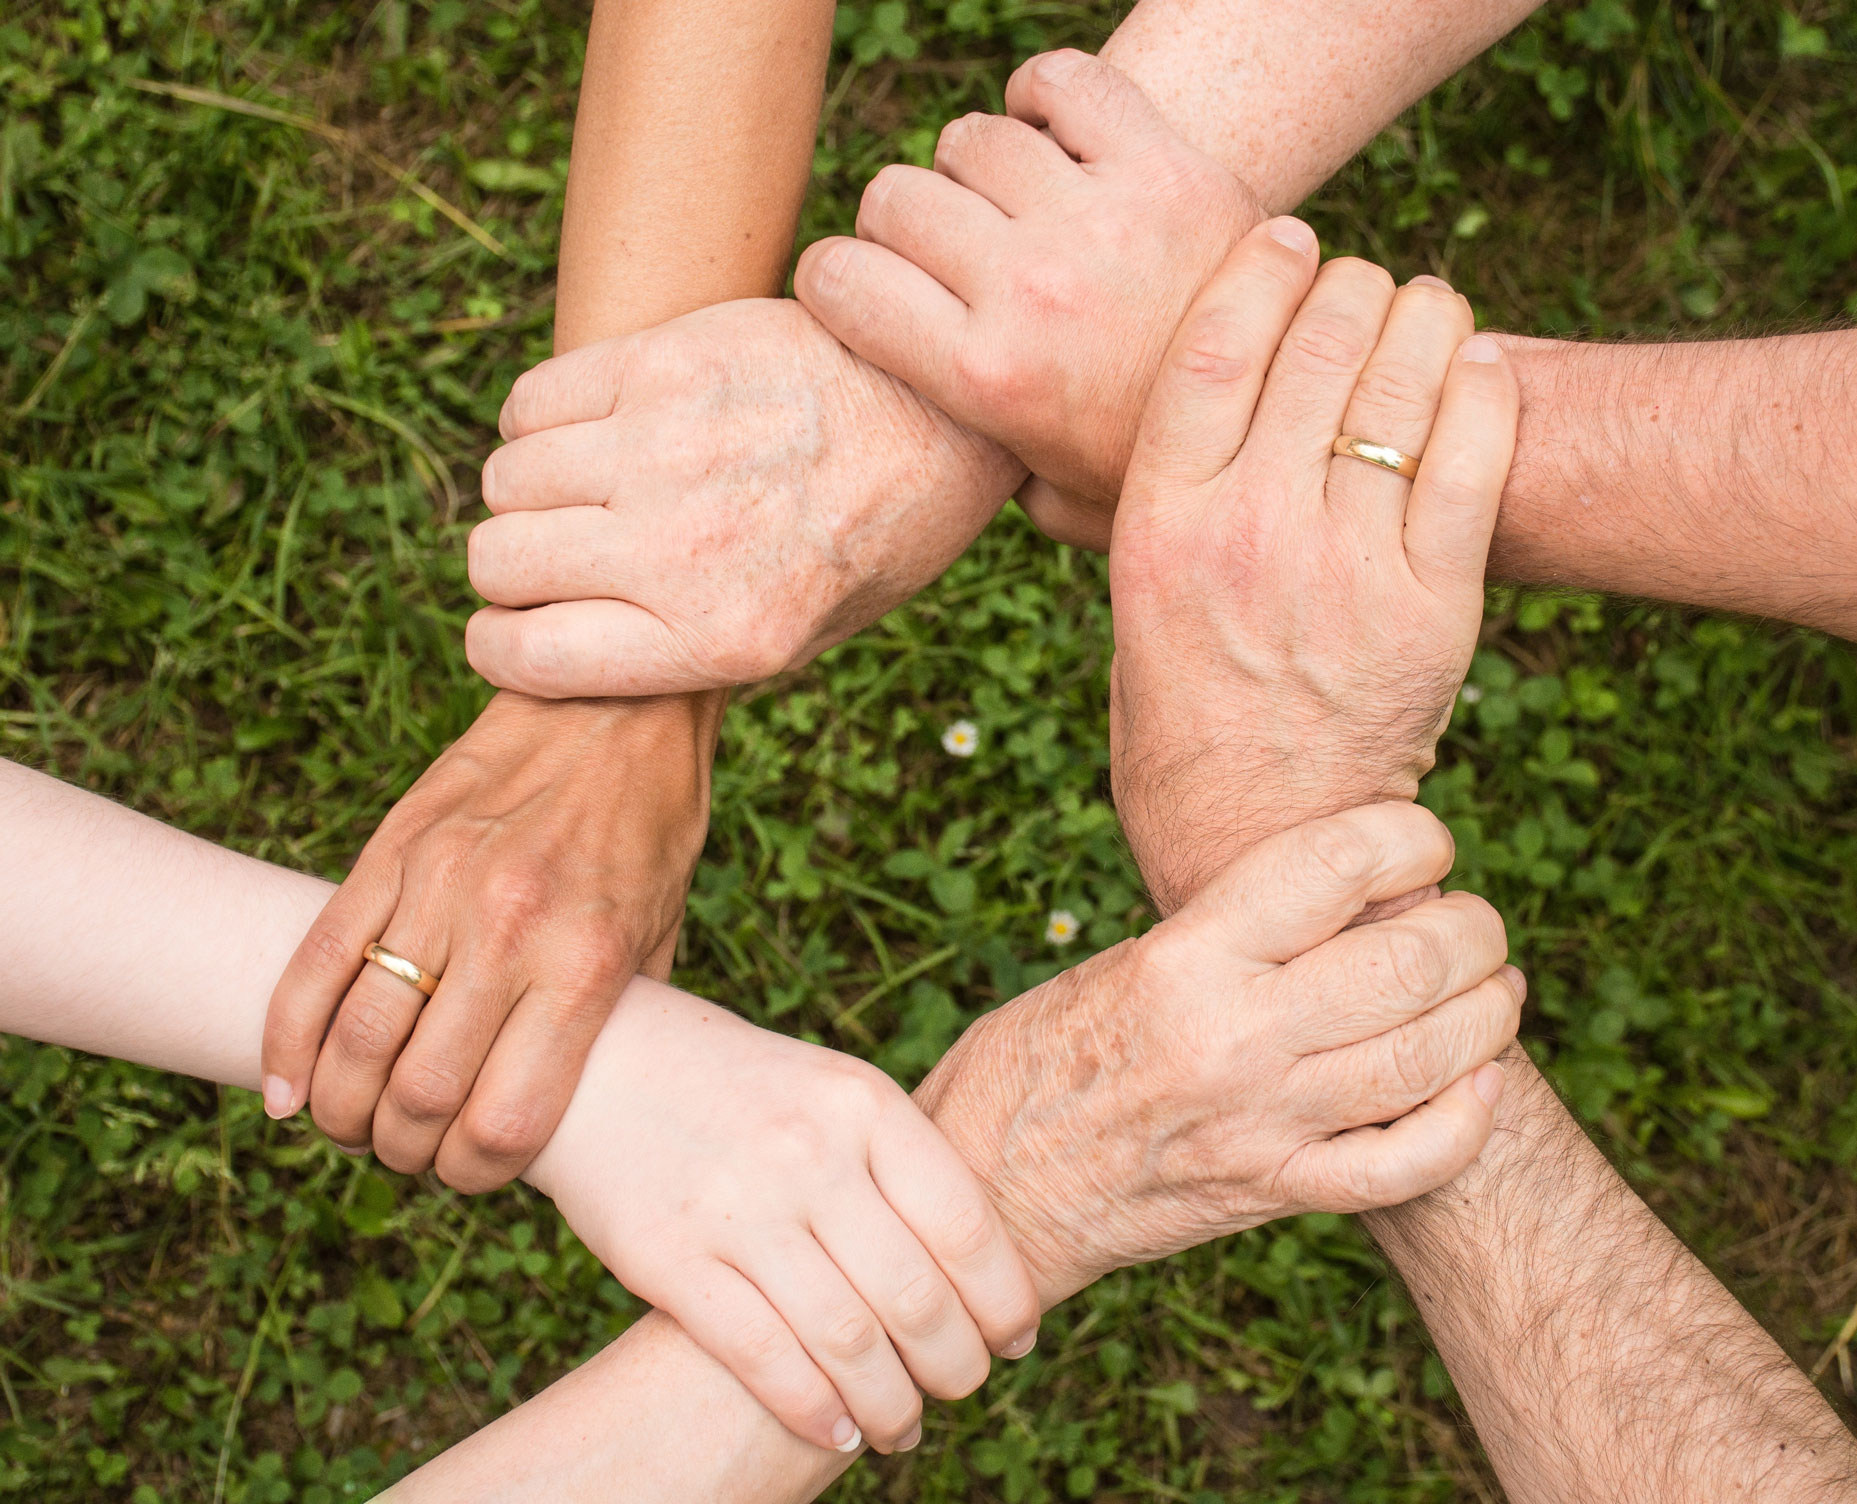 image-of-community-support-holding-hands-for-mental-health-chain